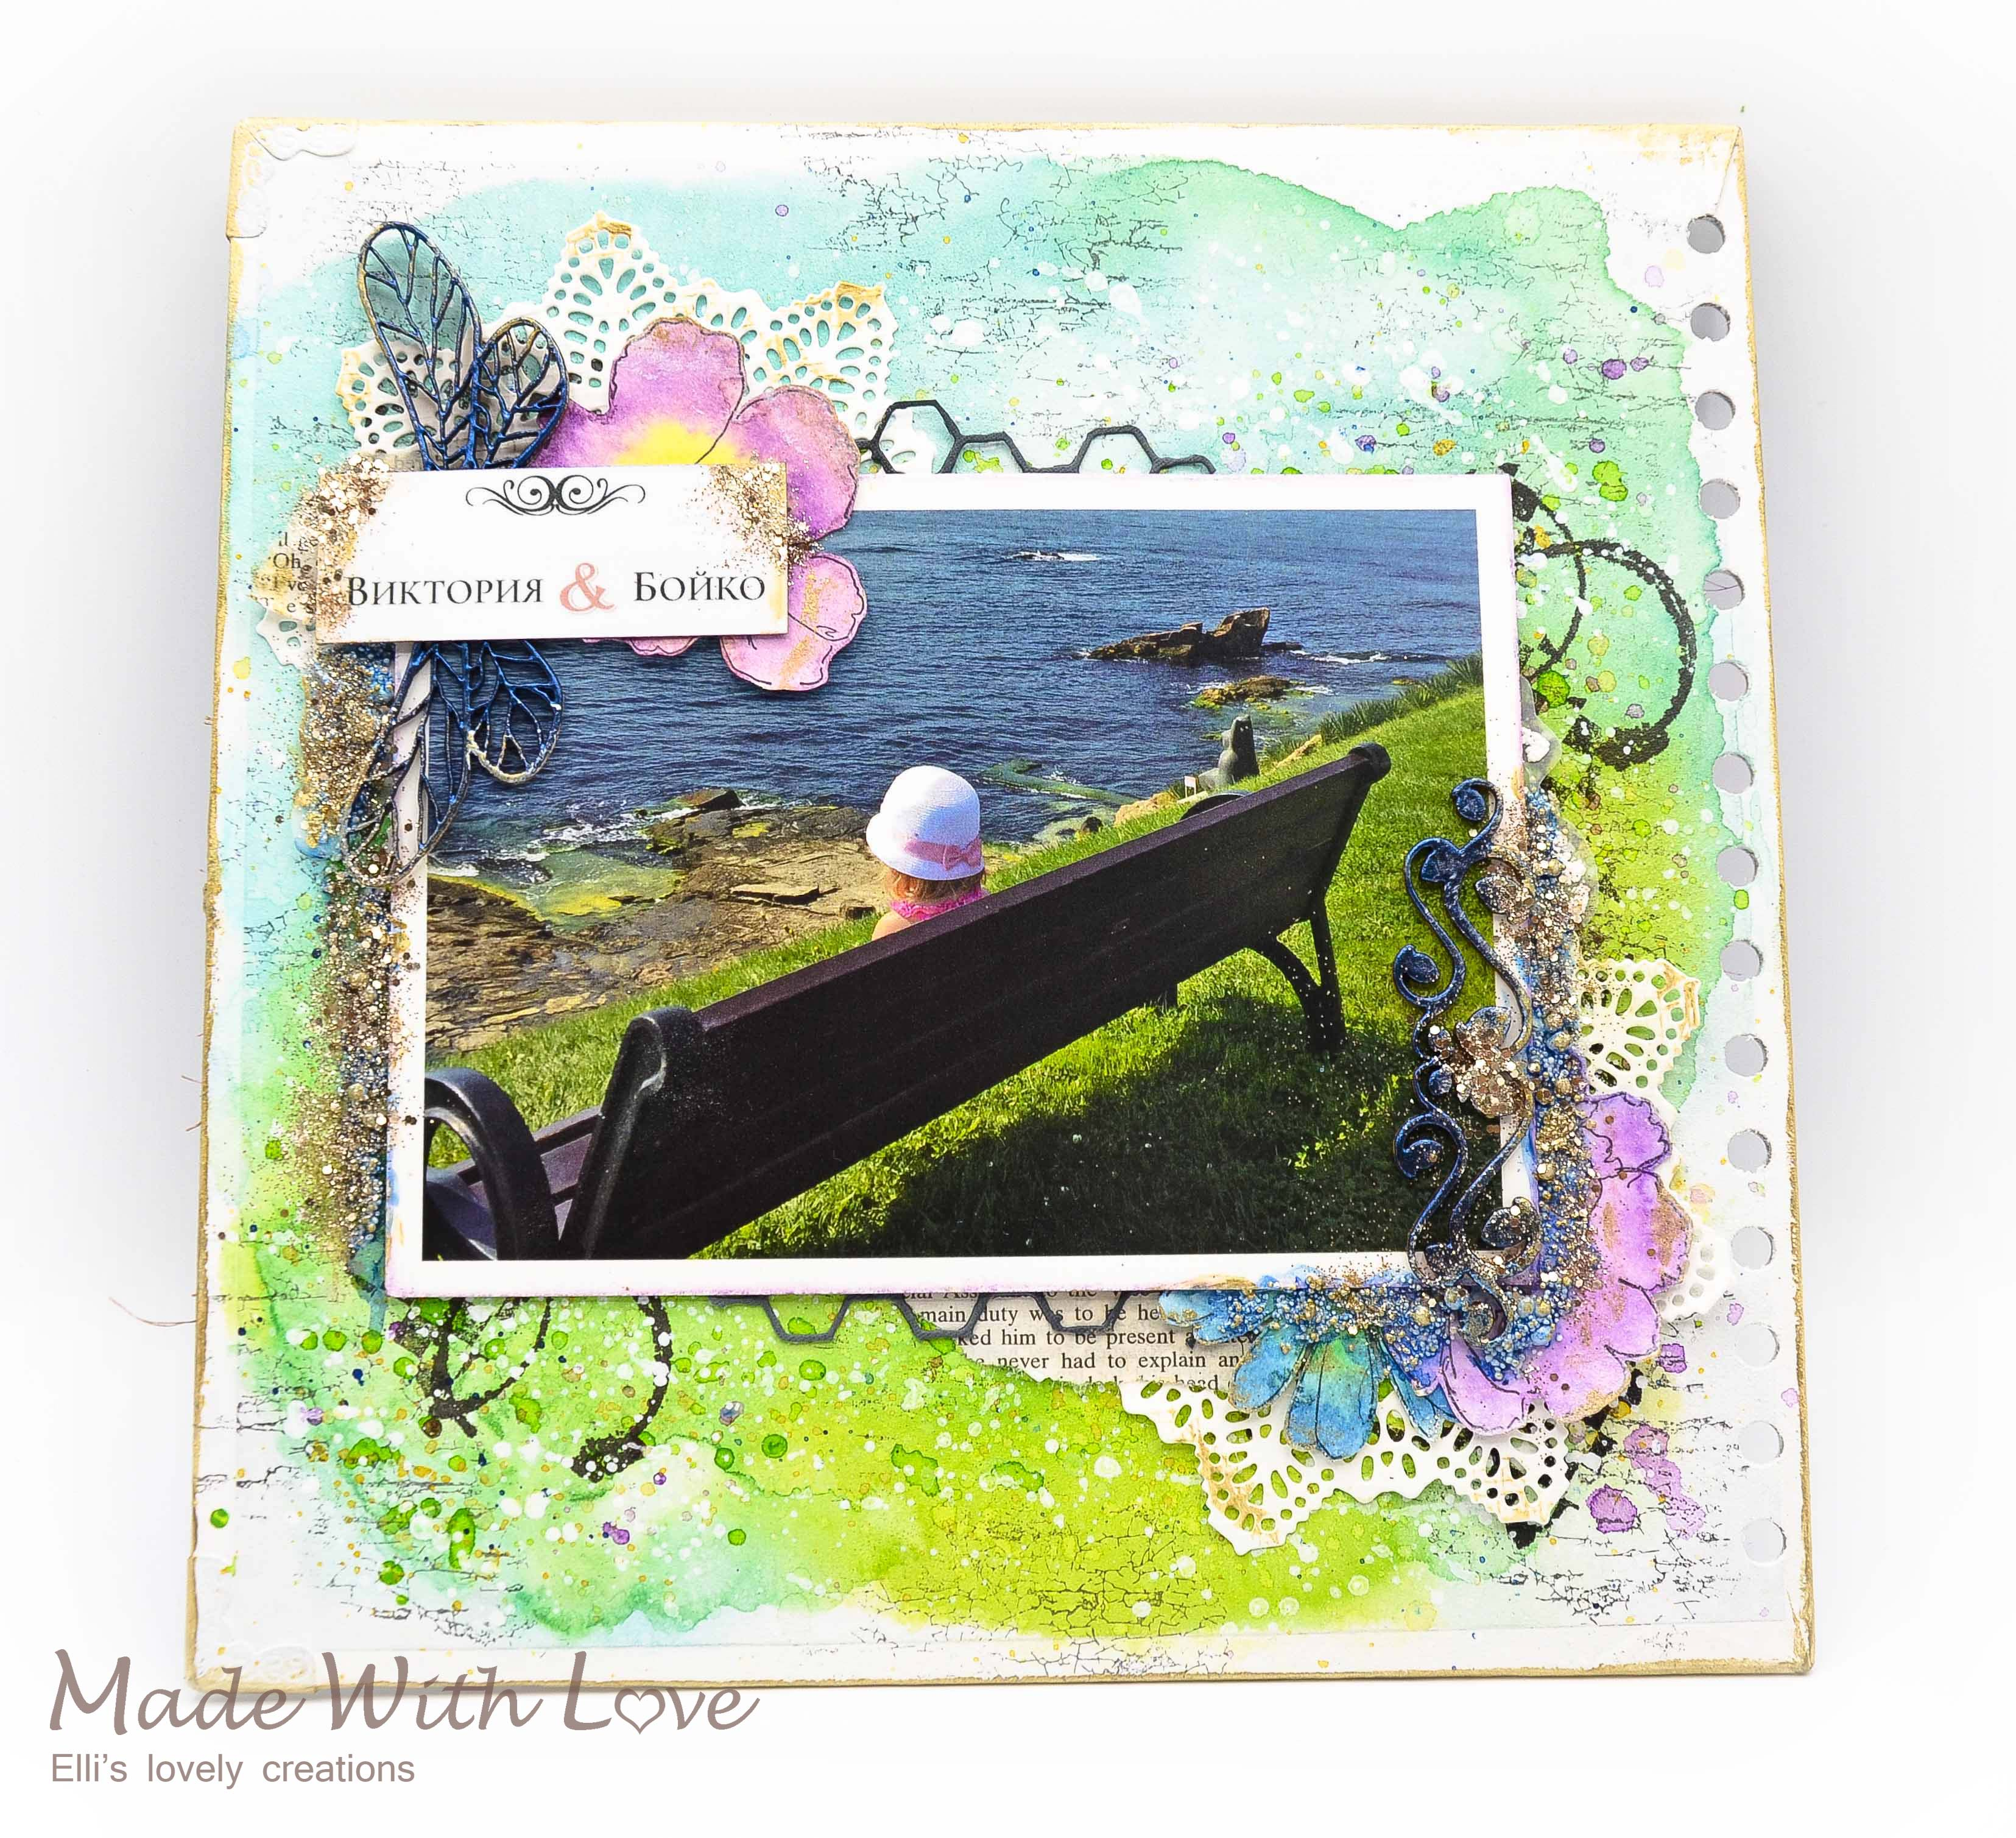 Mixed Media Summer Garden Wedding Album Cover Enjoy 0030